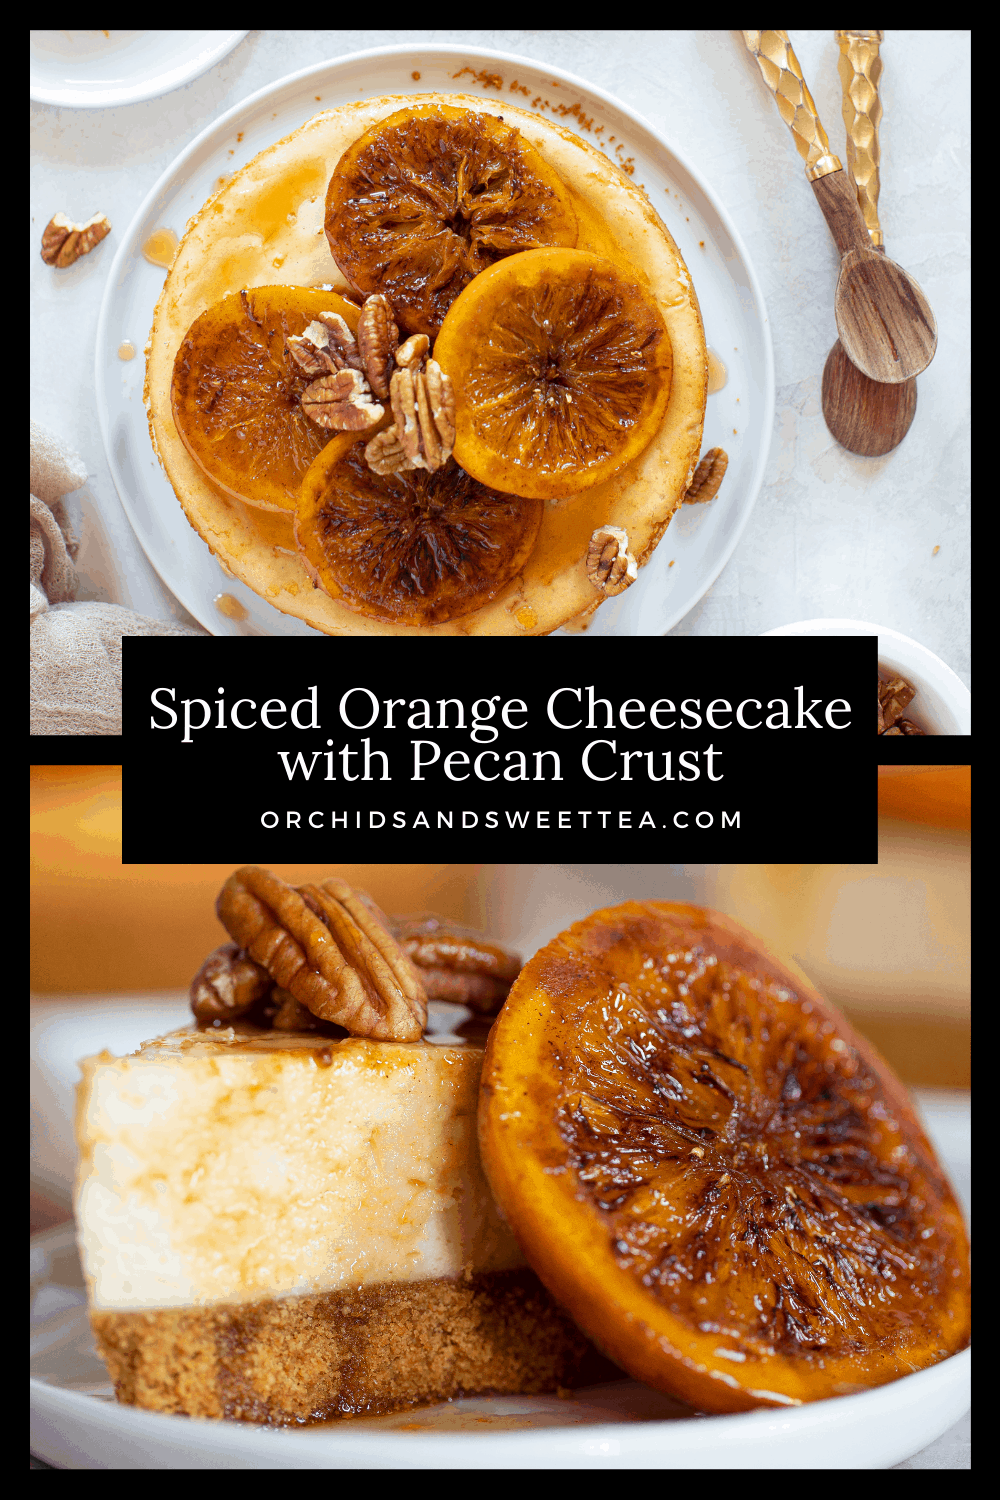 Spiced Orange Cheesecake with Pecan Crust